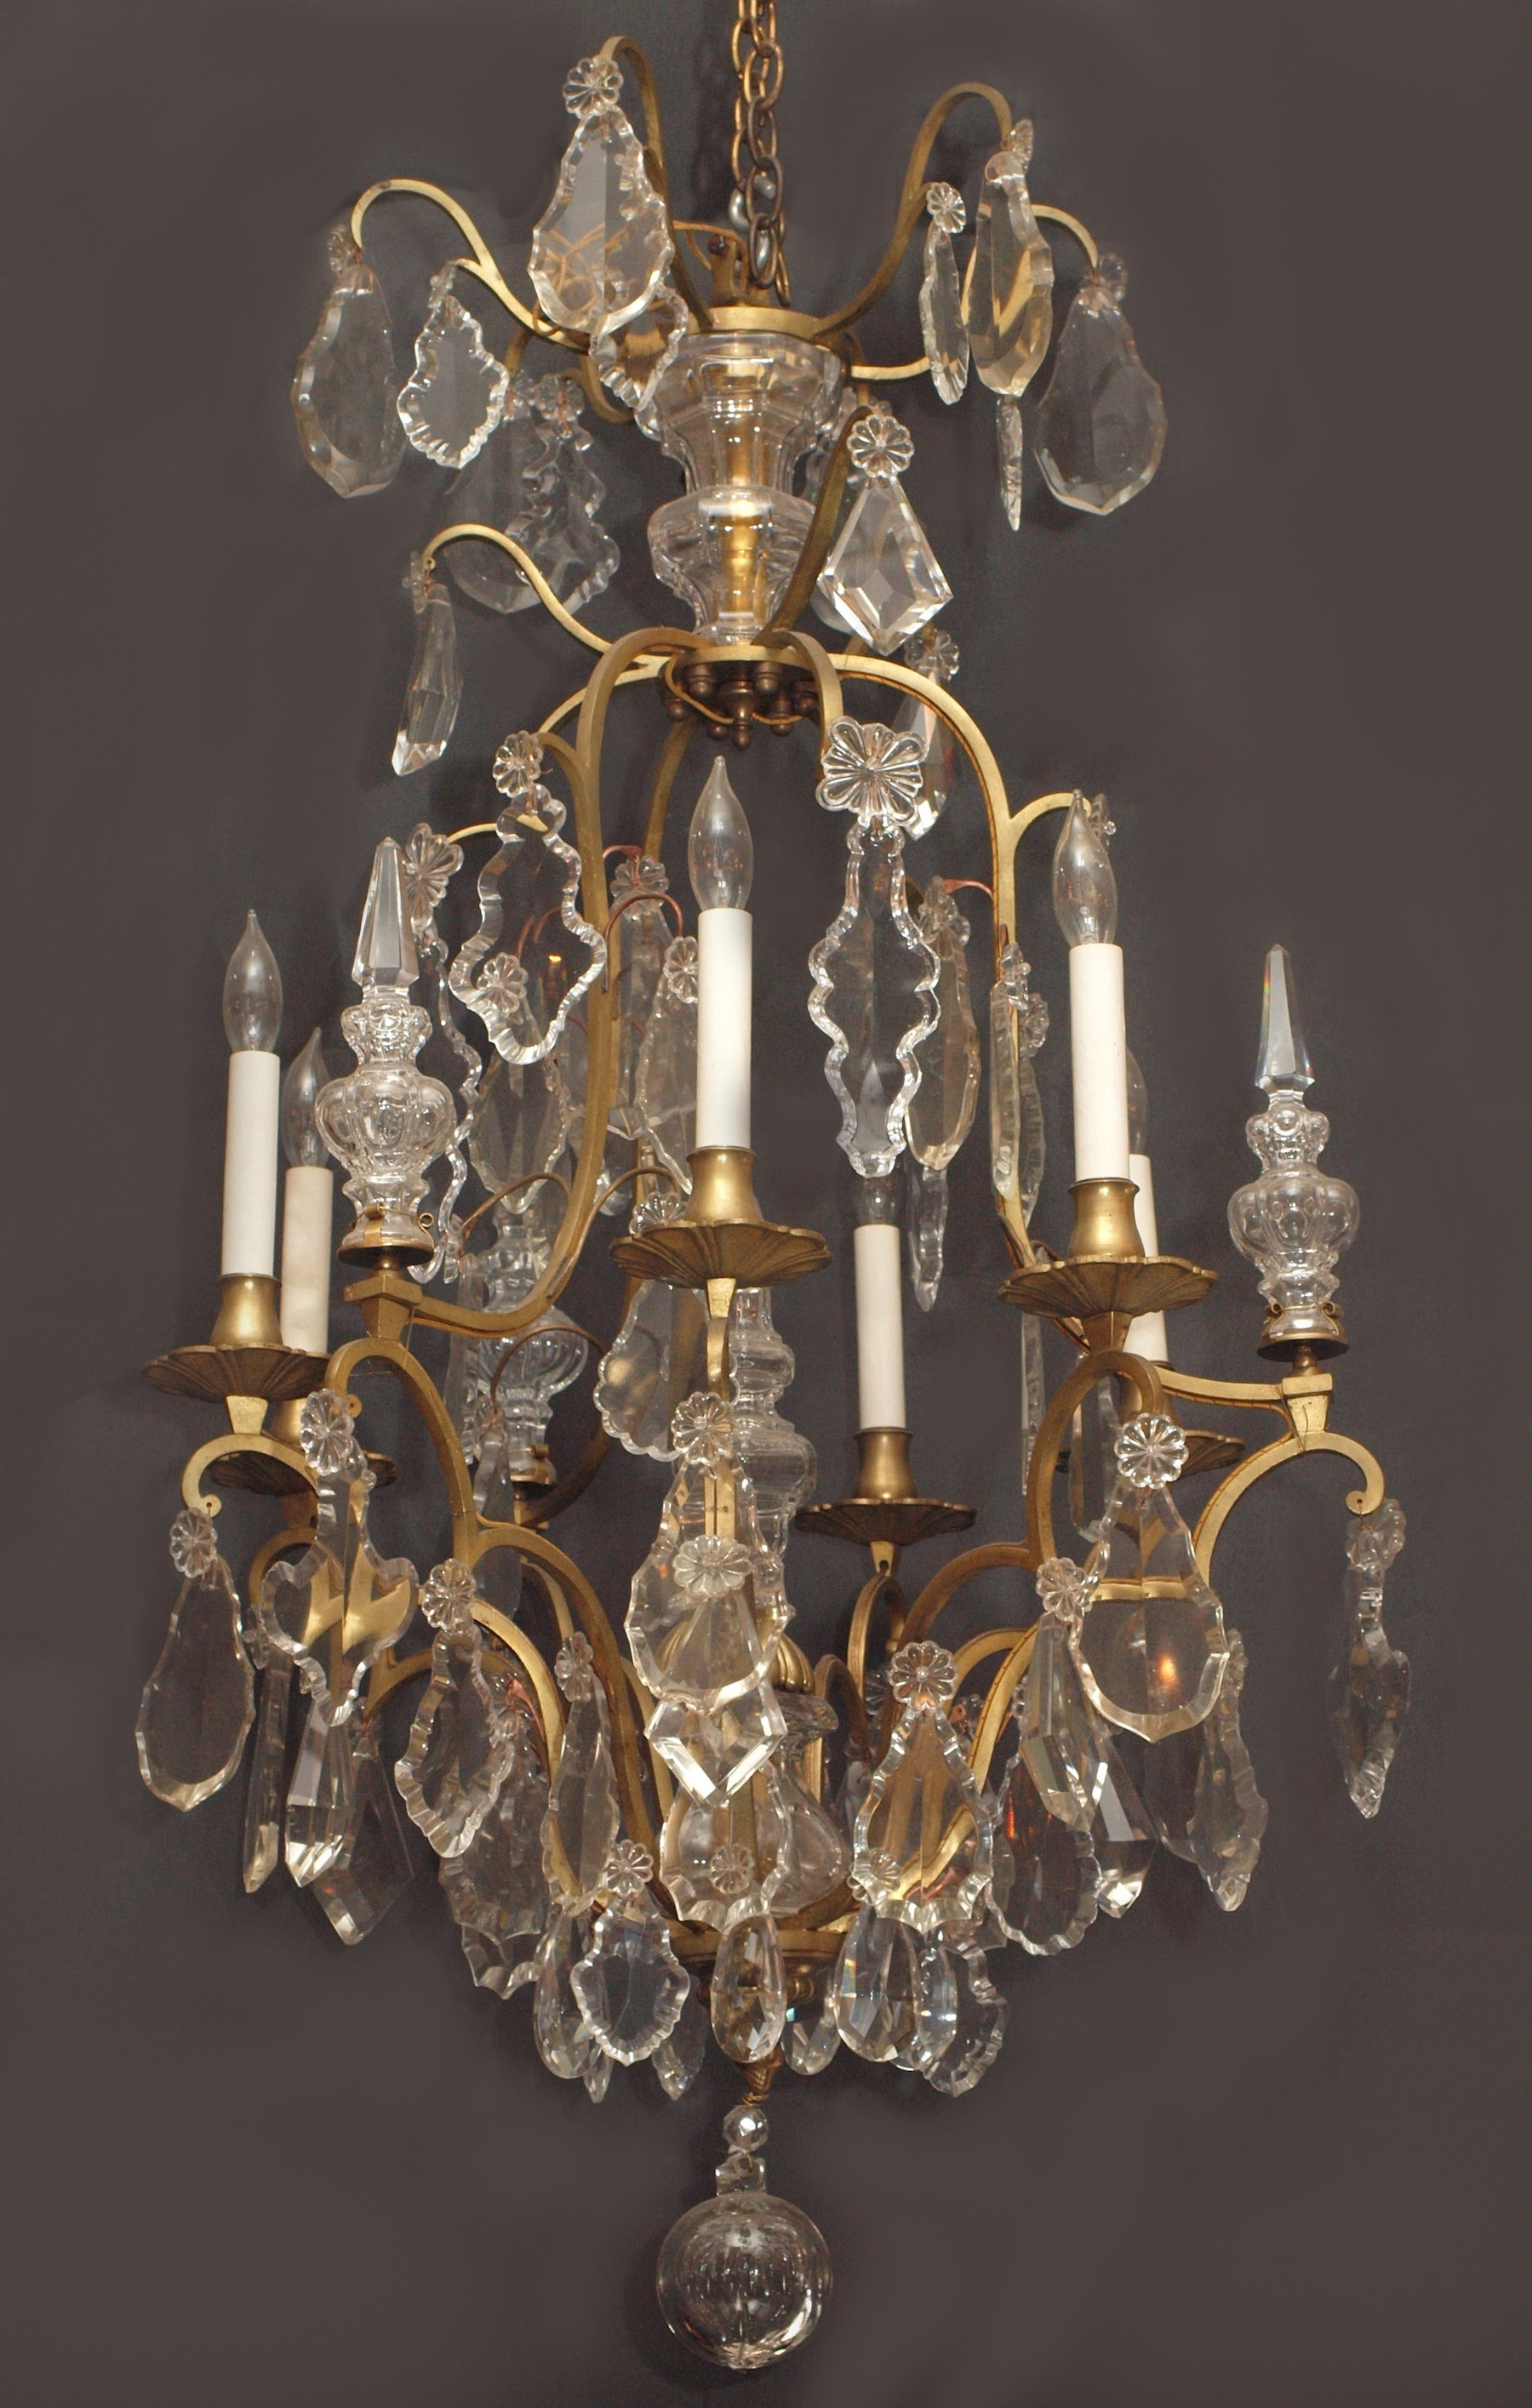 Vintage French Chandeliers in Most Recent Vintage French Chandelier - Chandelier Designs